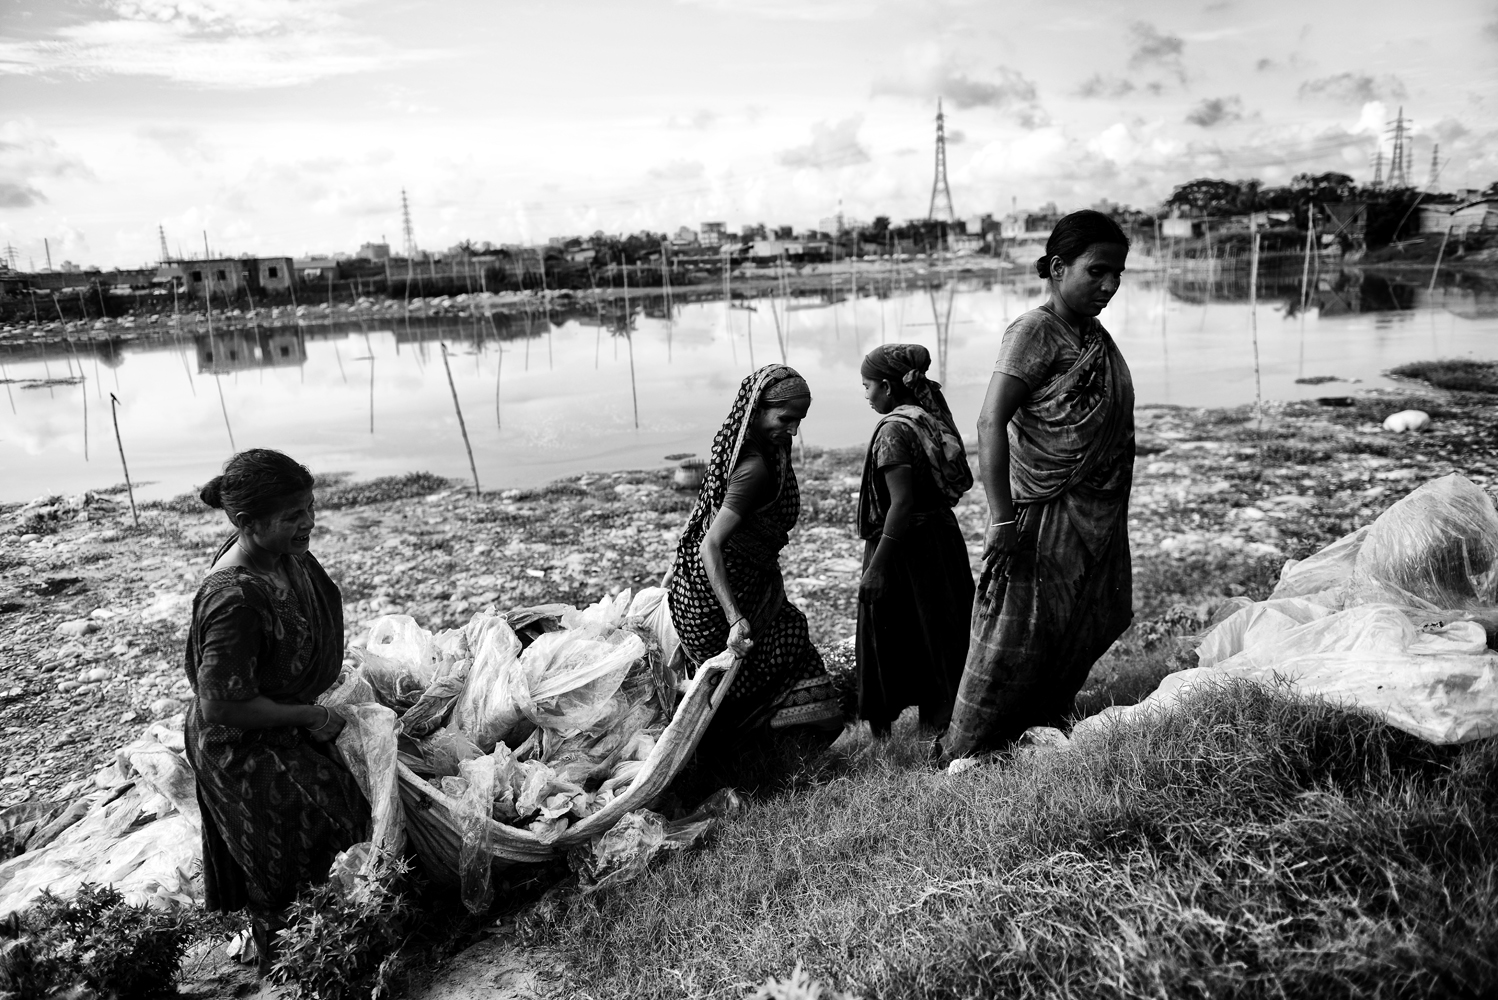 Women washing clothes in the lake which has been polluted by tanneries and chemical products in Hazaribagh, Dhaka, Bangladesh.